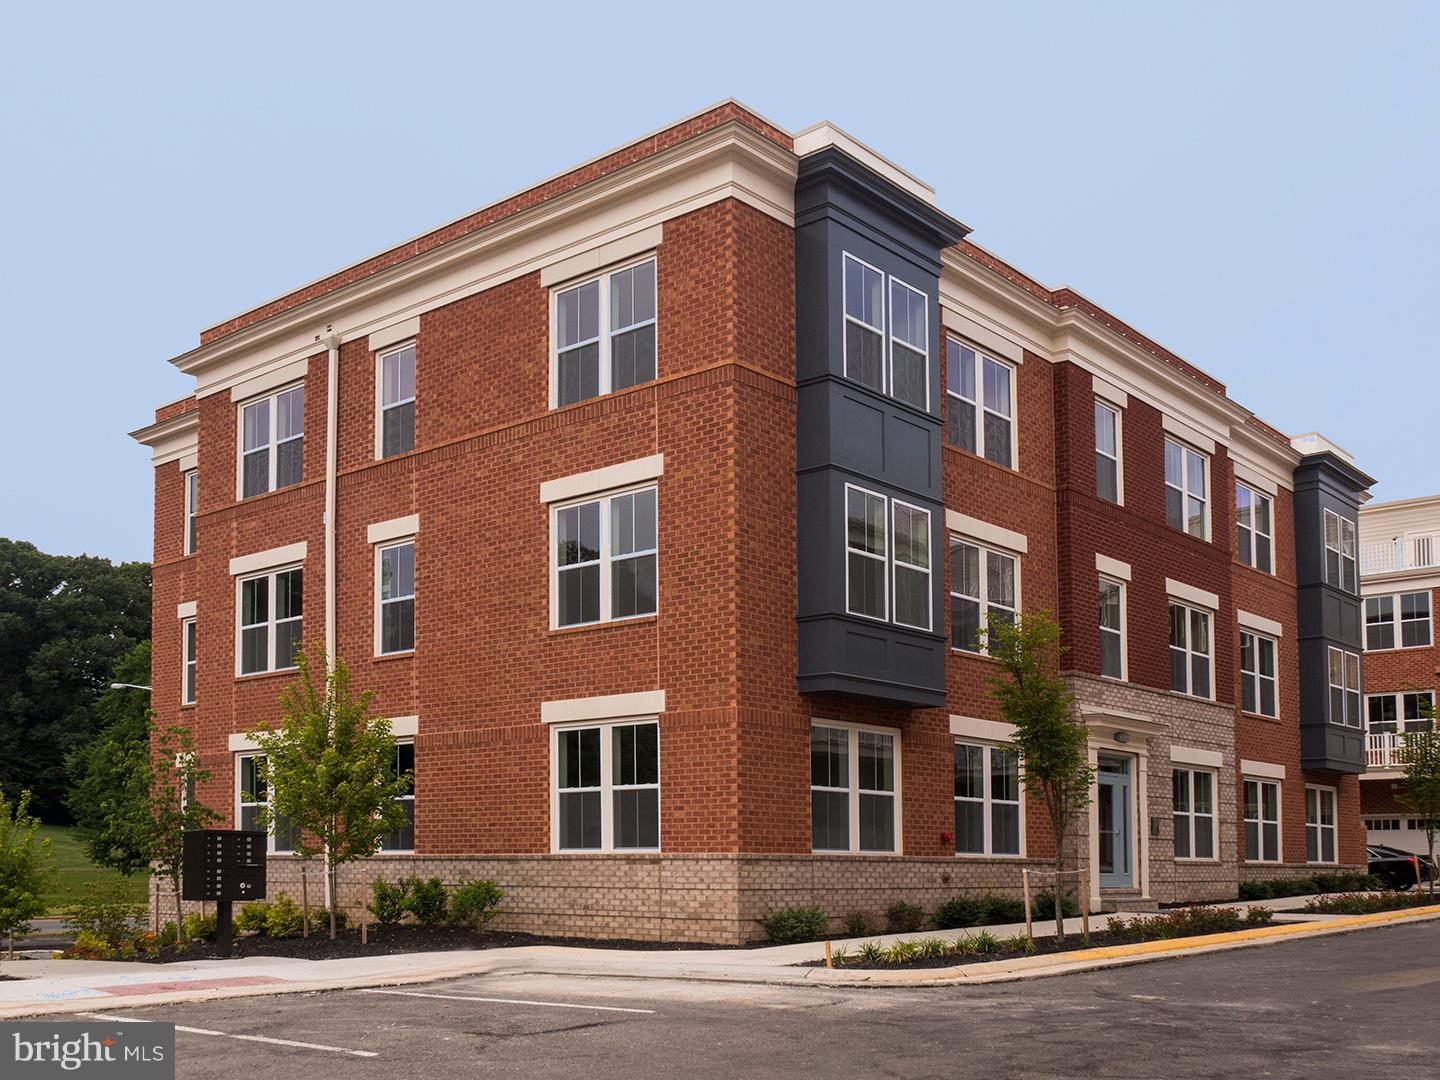 BRAND NEW CONDO-FLAT.  IMMEDIATE MOVE-IN.  9' CEILINGS. 2 RESERVED PARKING SPACES.  PRIVATE STORAGE AREA.  VIEW OF TREE PRESERVE AND PARK.  CONDO FEE INCLUDES USE OF RESTON ASSOC AMENITIES.  SEKAS HOMES BUILDING CUSTOM HOMES FOR 33 YEARS.  COME TO SALES OFFICE AT 1977 ROLAND CLARKE PLACE IN SUNRISE SQUARE.